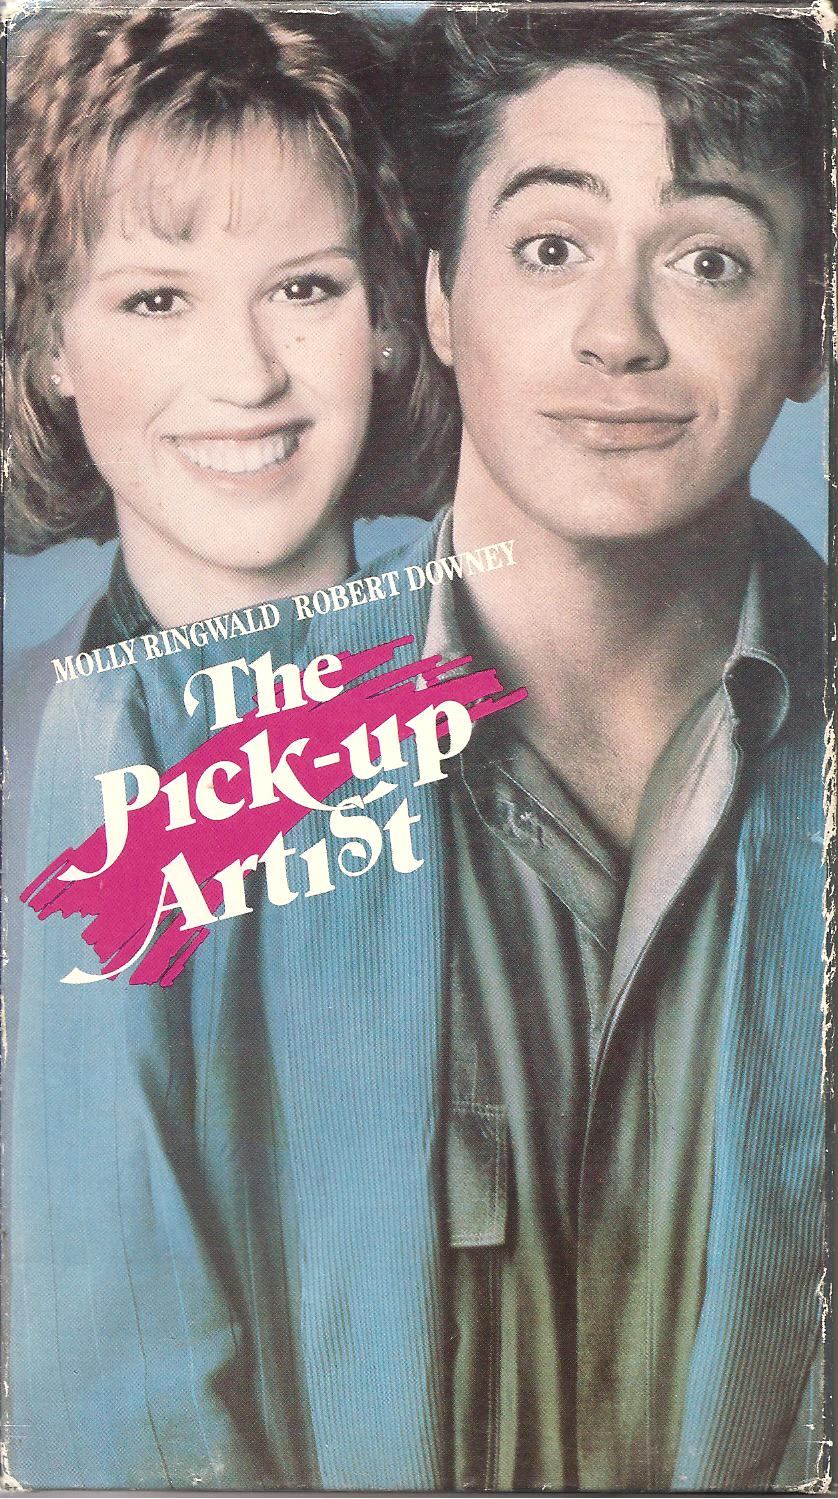 The pick-up artist movie